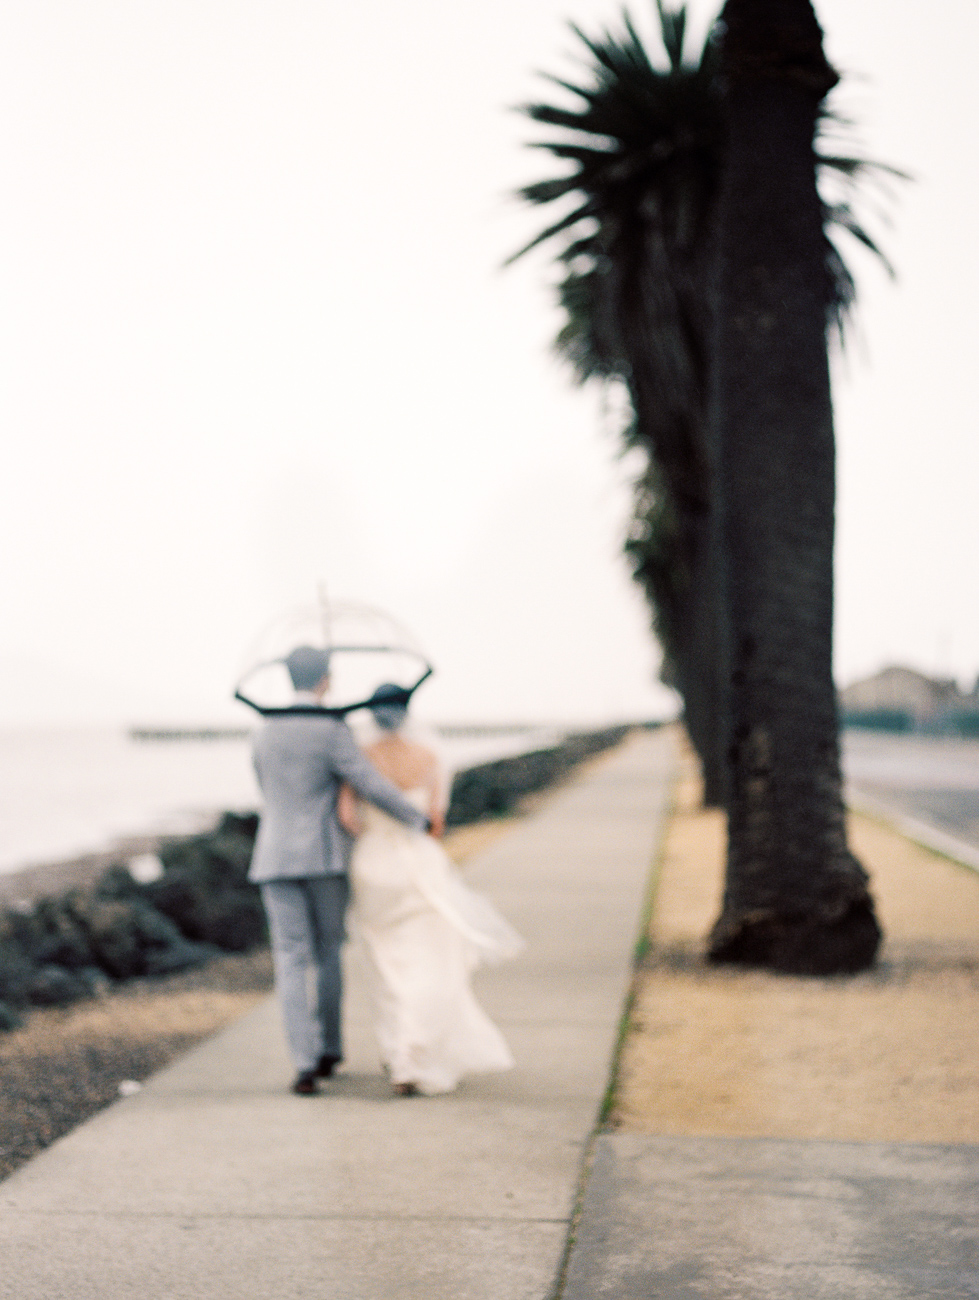 rainy san francisco bay wedding walking with umbrella